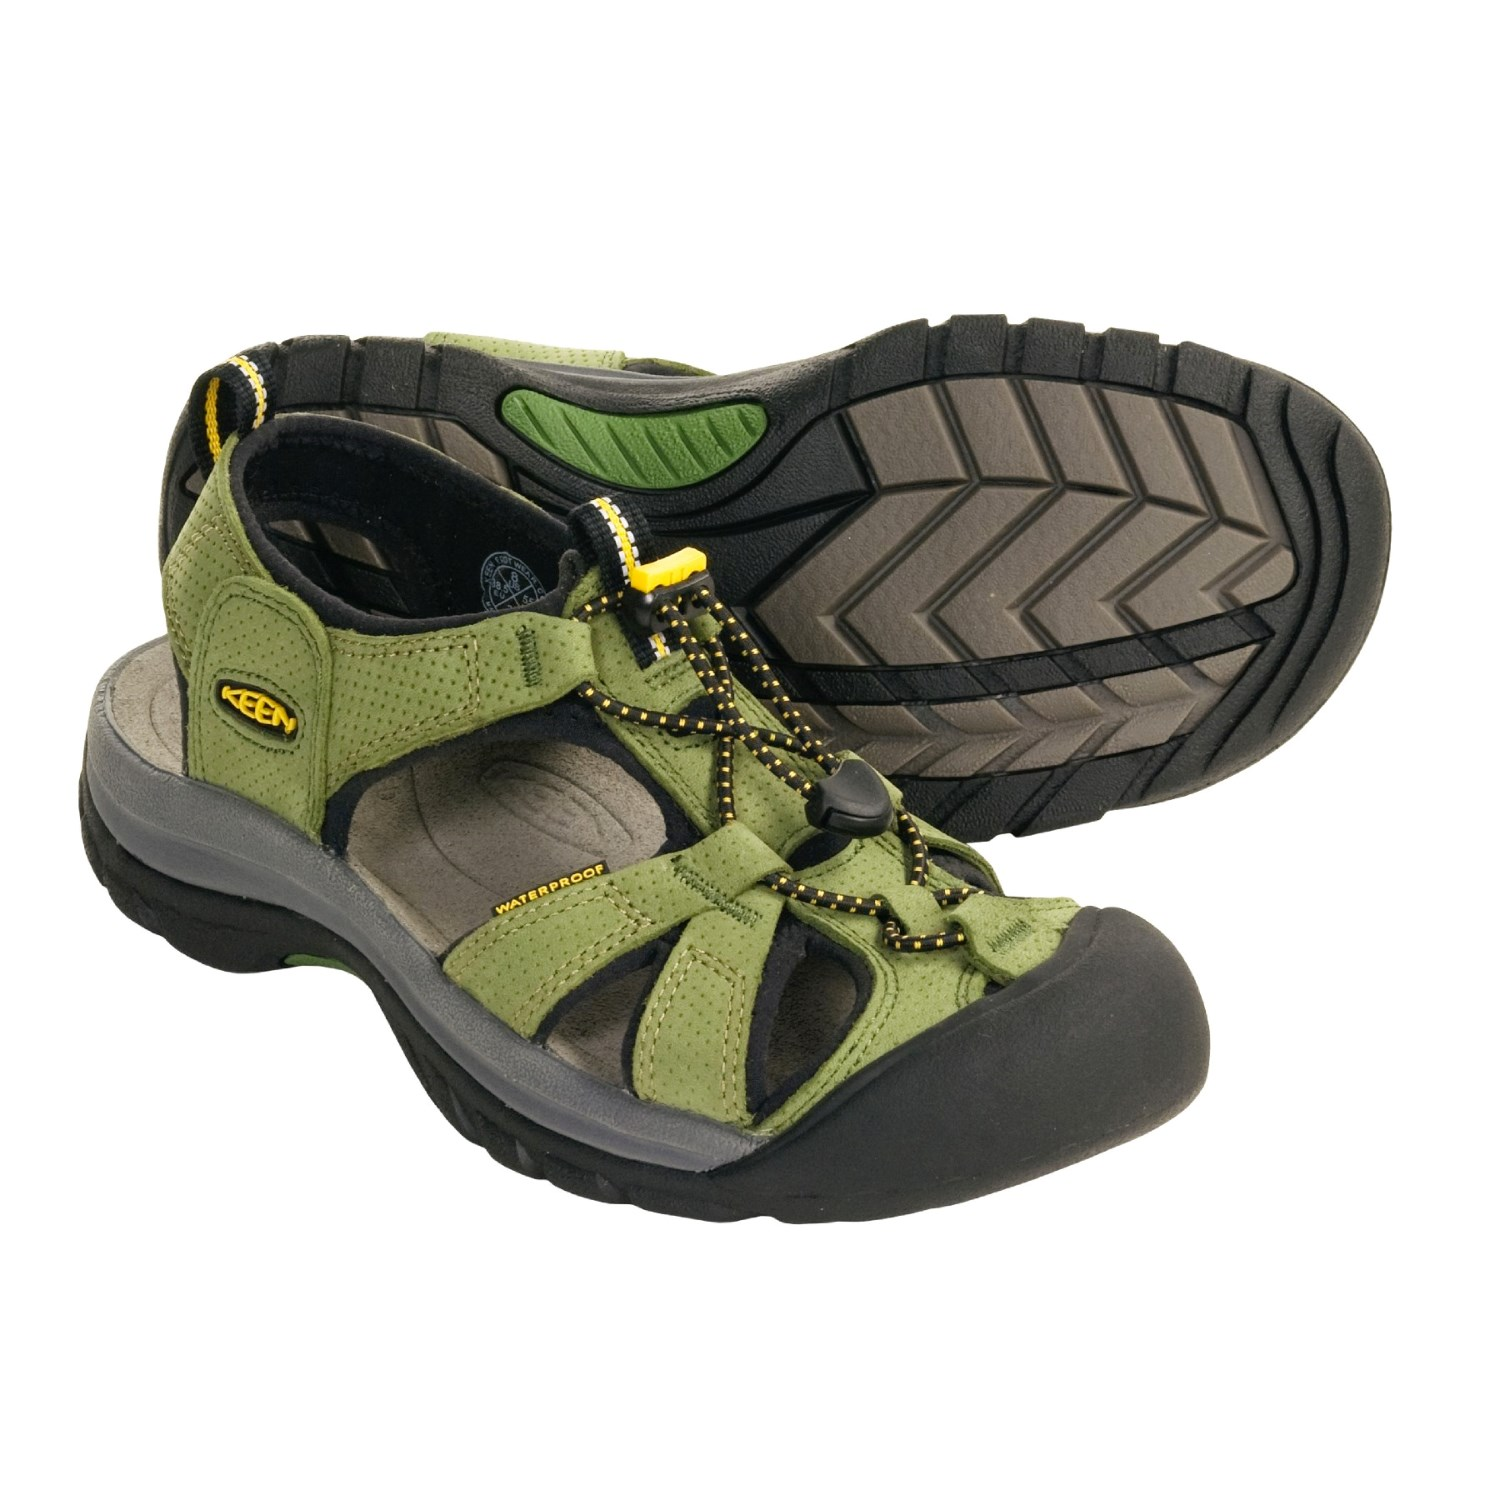 Awesome And In Addition To Birkenstocks Classic Contouring Footbed, This Unisex Pair Sports An Extra Layer Of Foam  Give Your Feet Postrun Relief With These Recovery